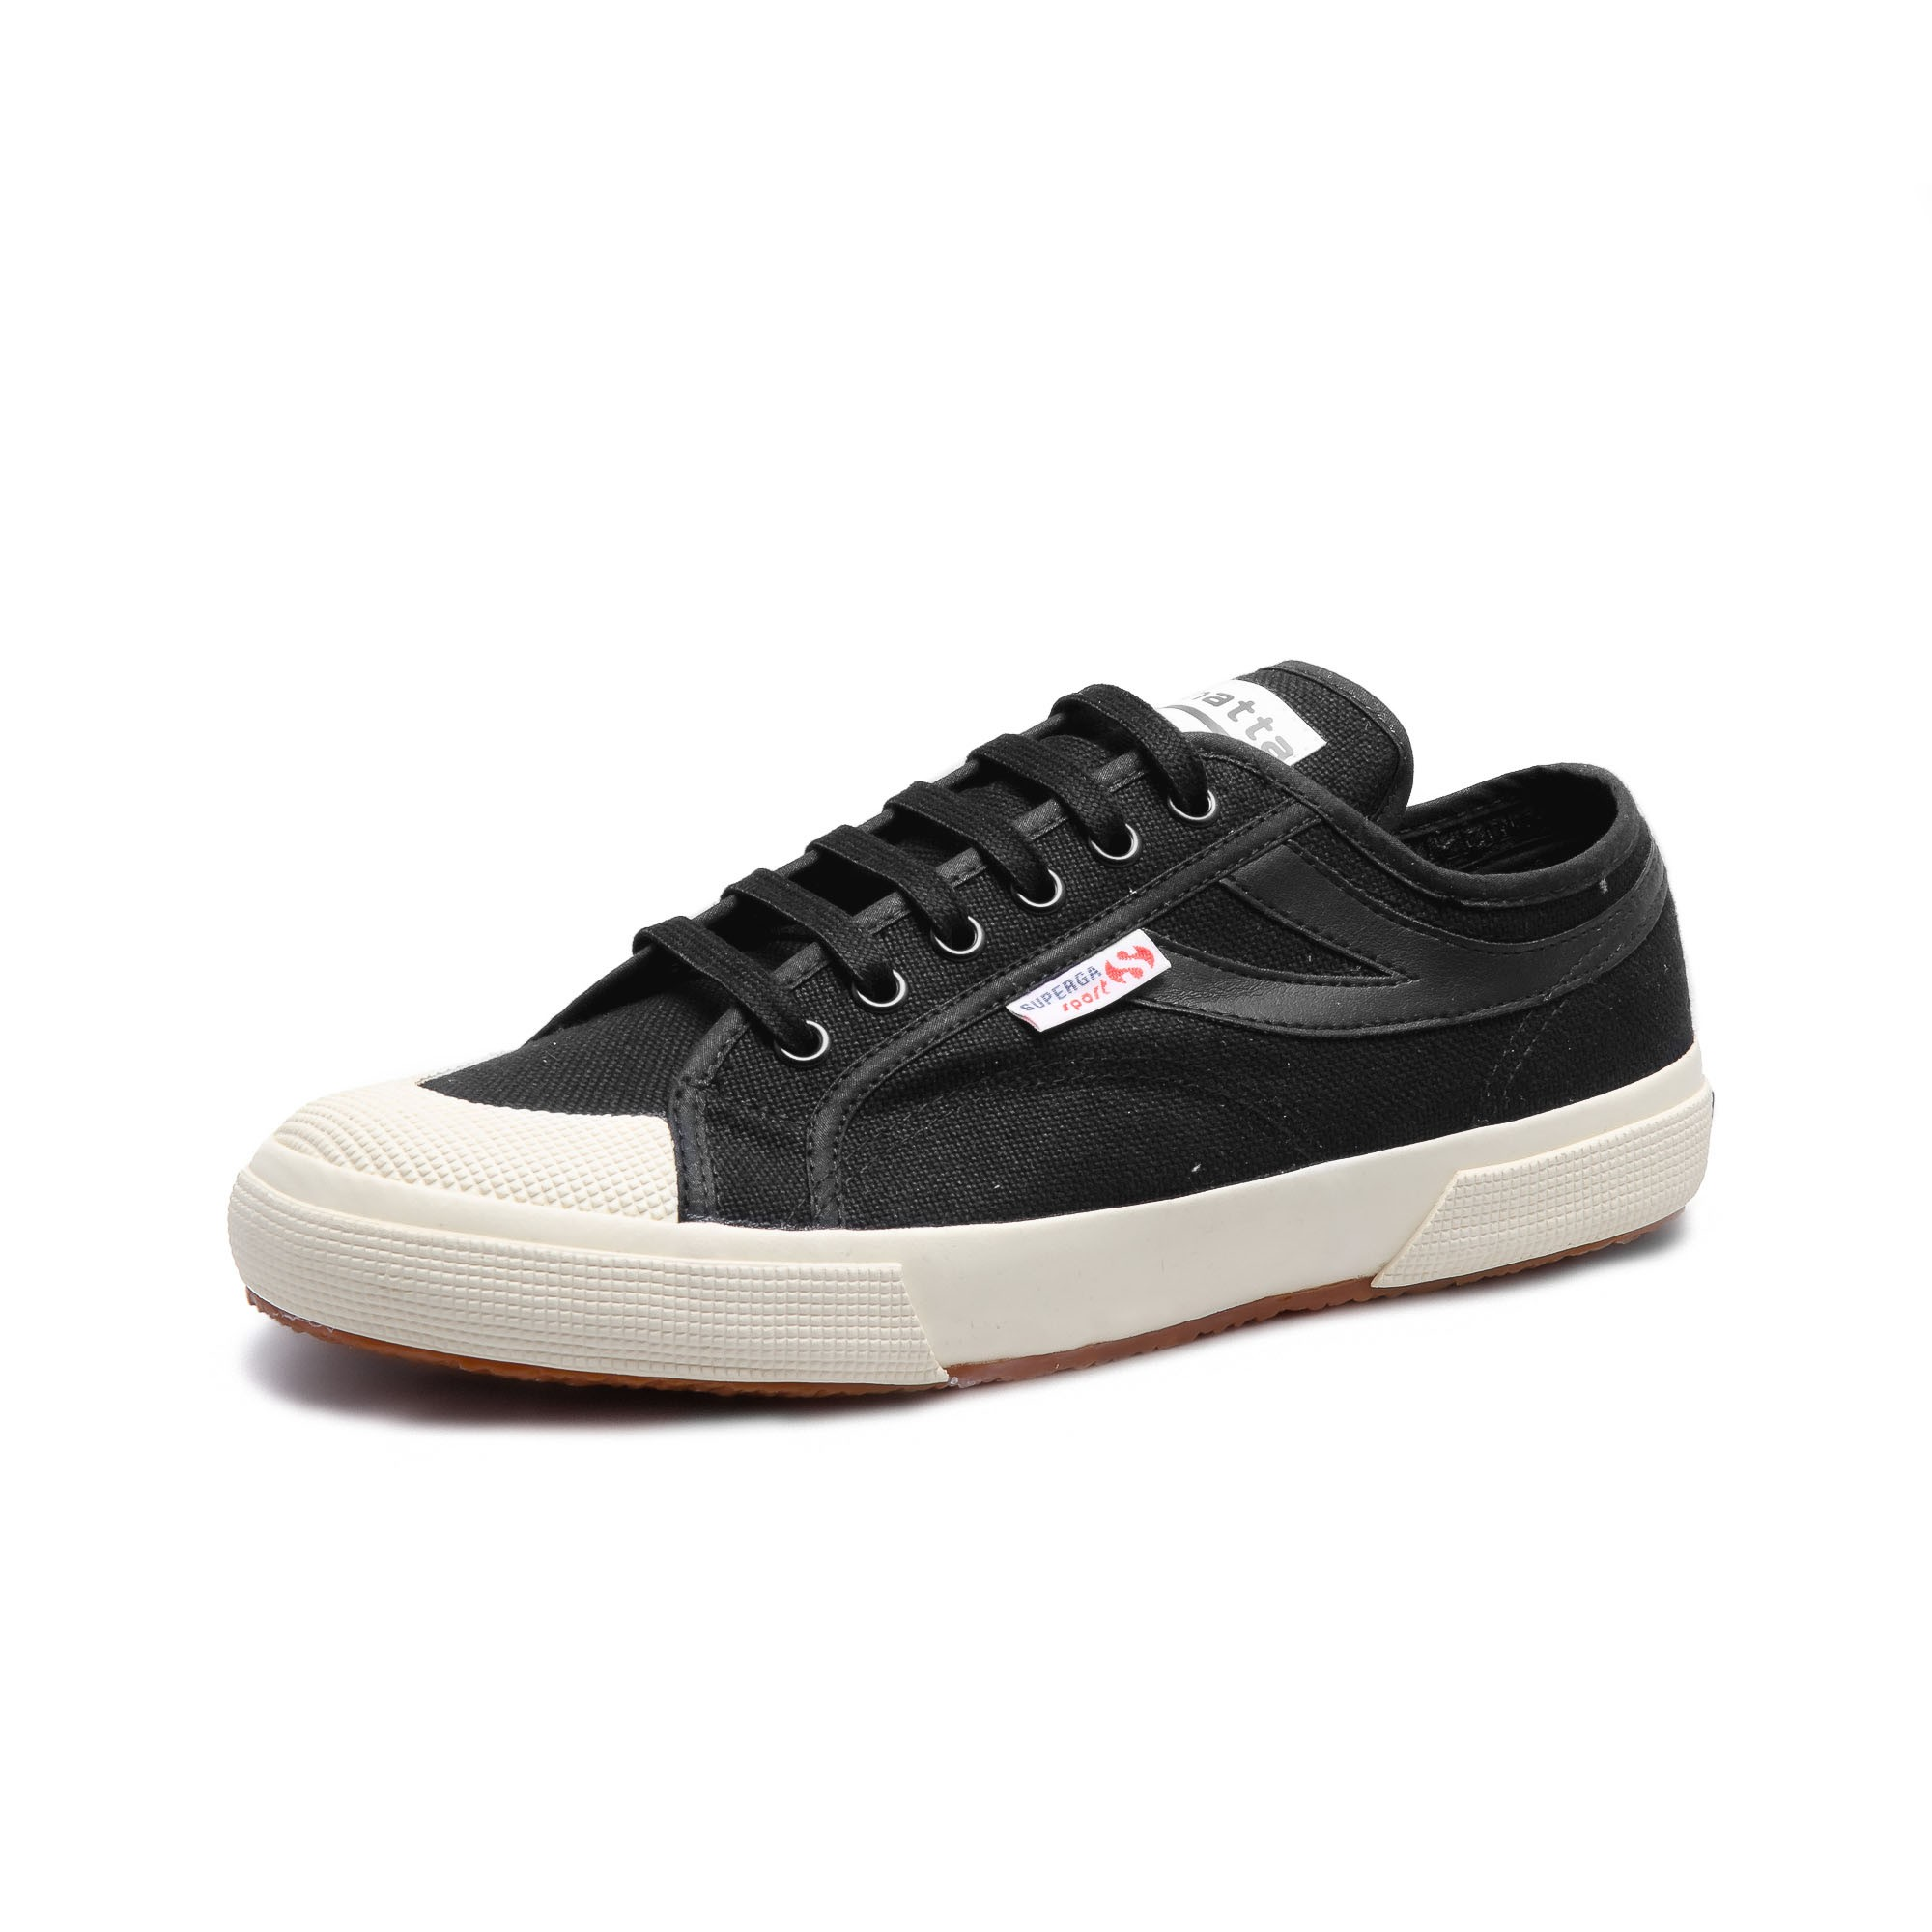 2750 COTU 2.0 PANATTA  BLACK- OFF WHITE